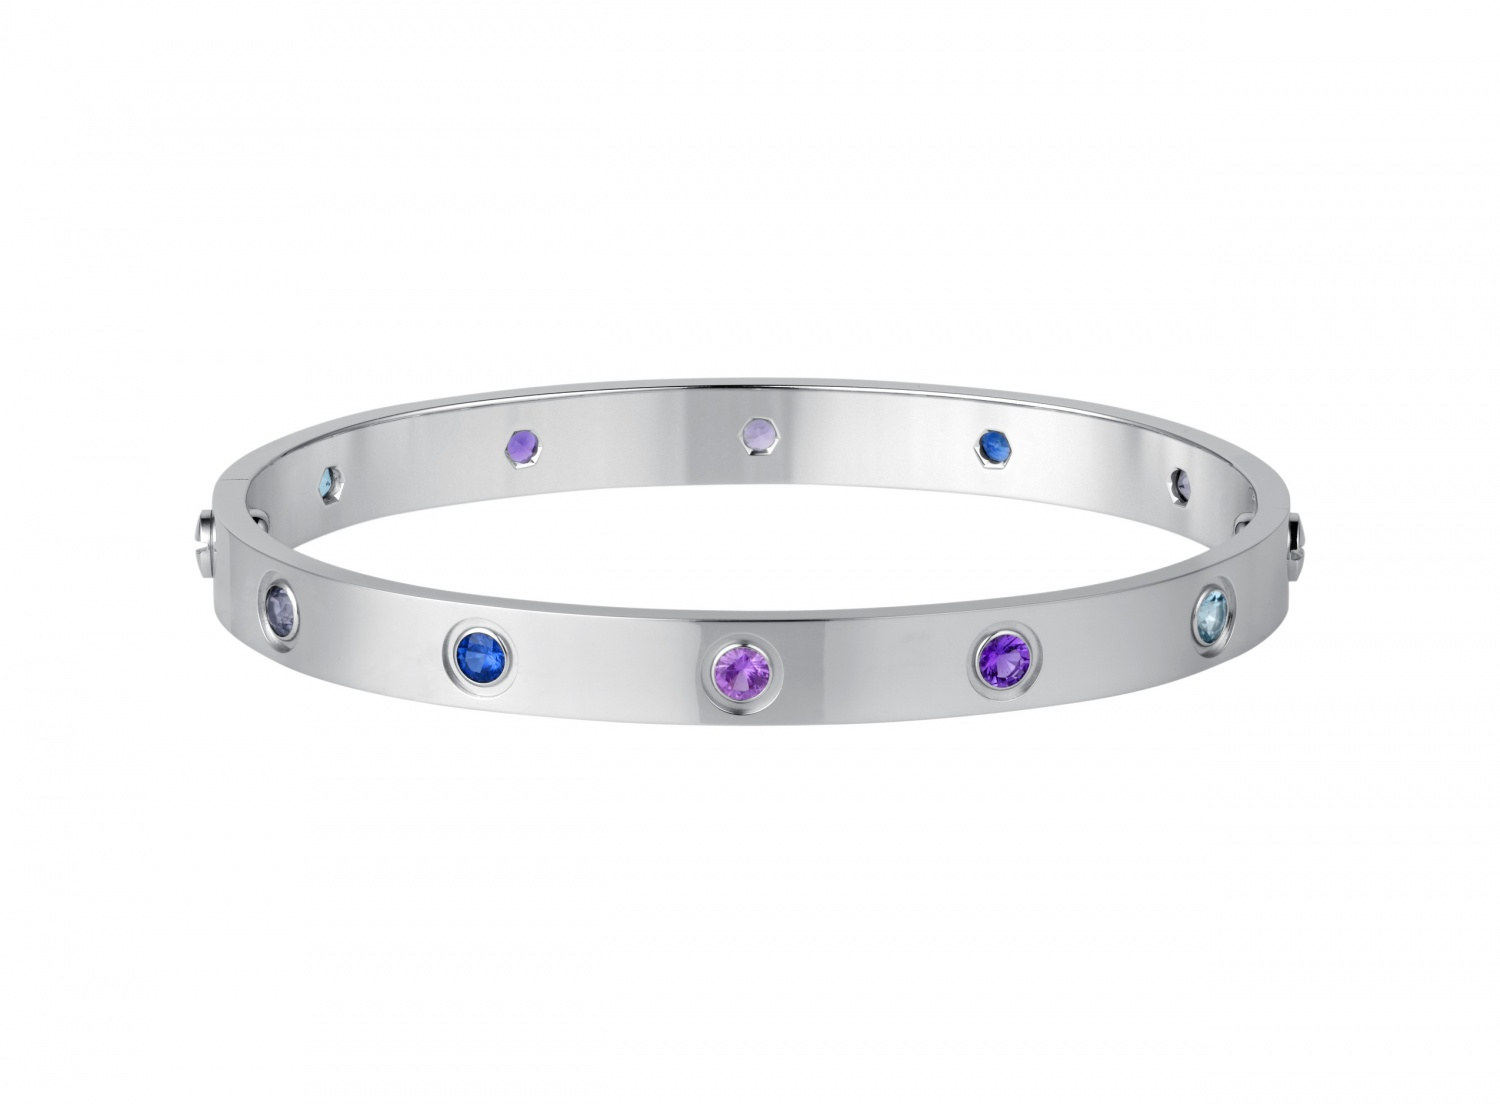 Cartier-Bracelet-from-the-Love-Collection-White-gold-blue-and-pink-sapphires-purple-spinels-amethysts-aquamarines